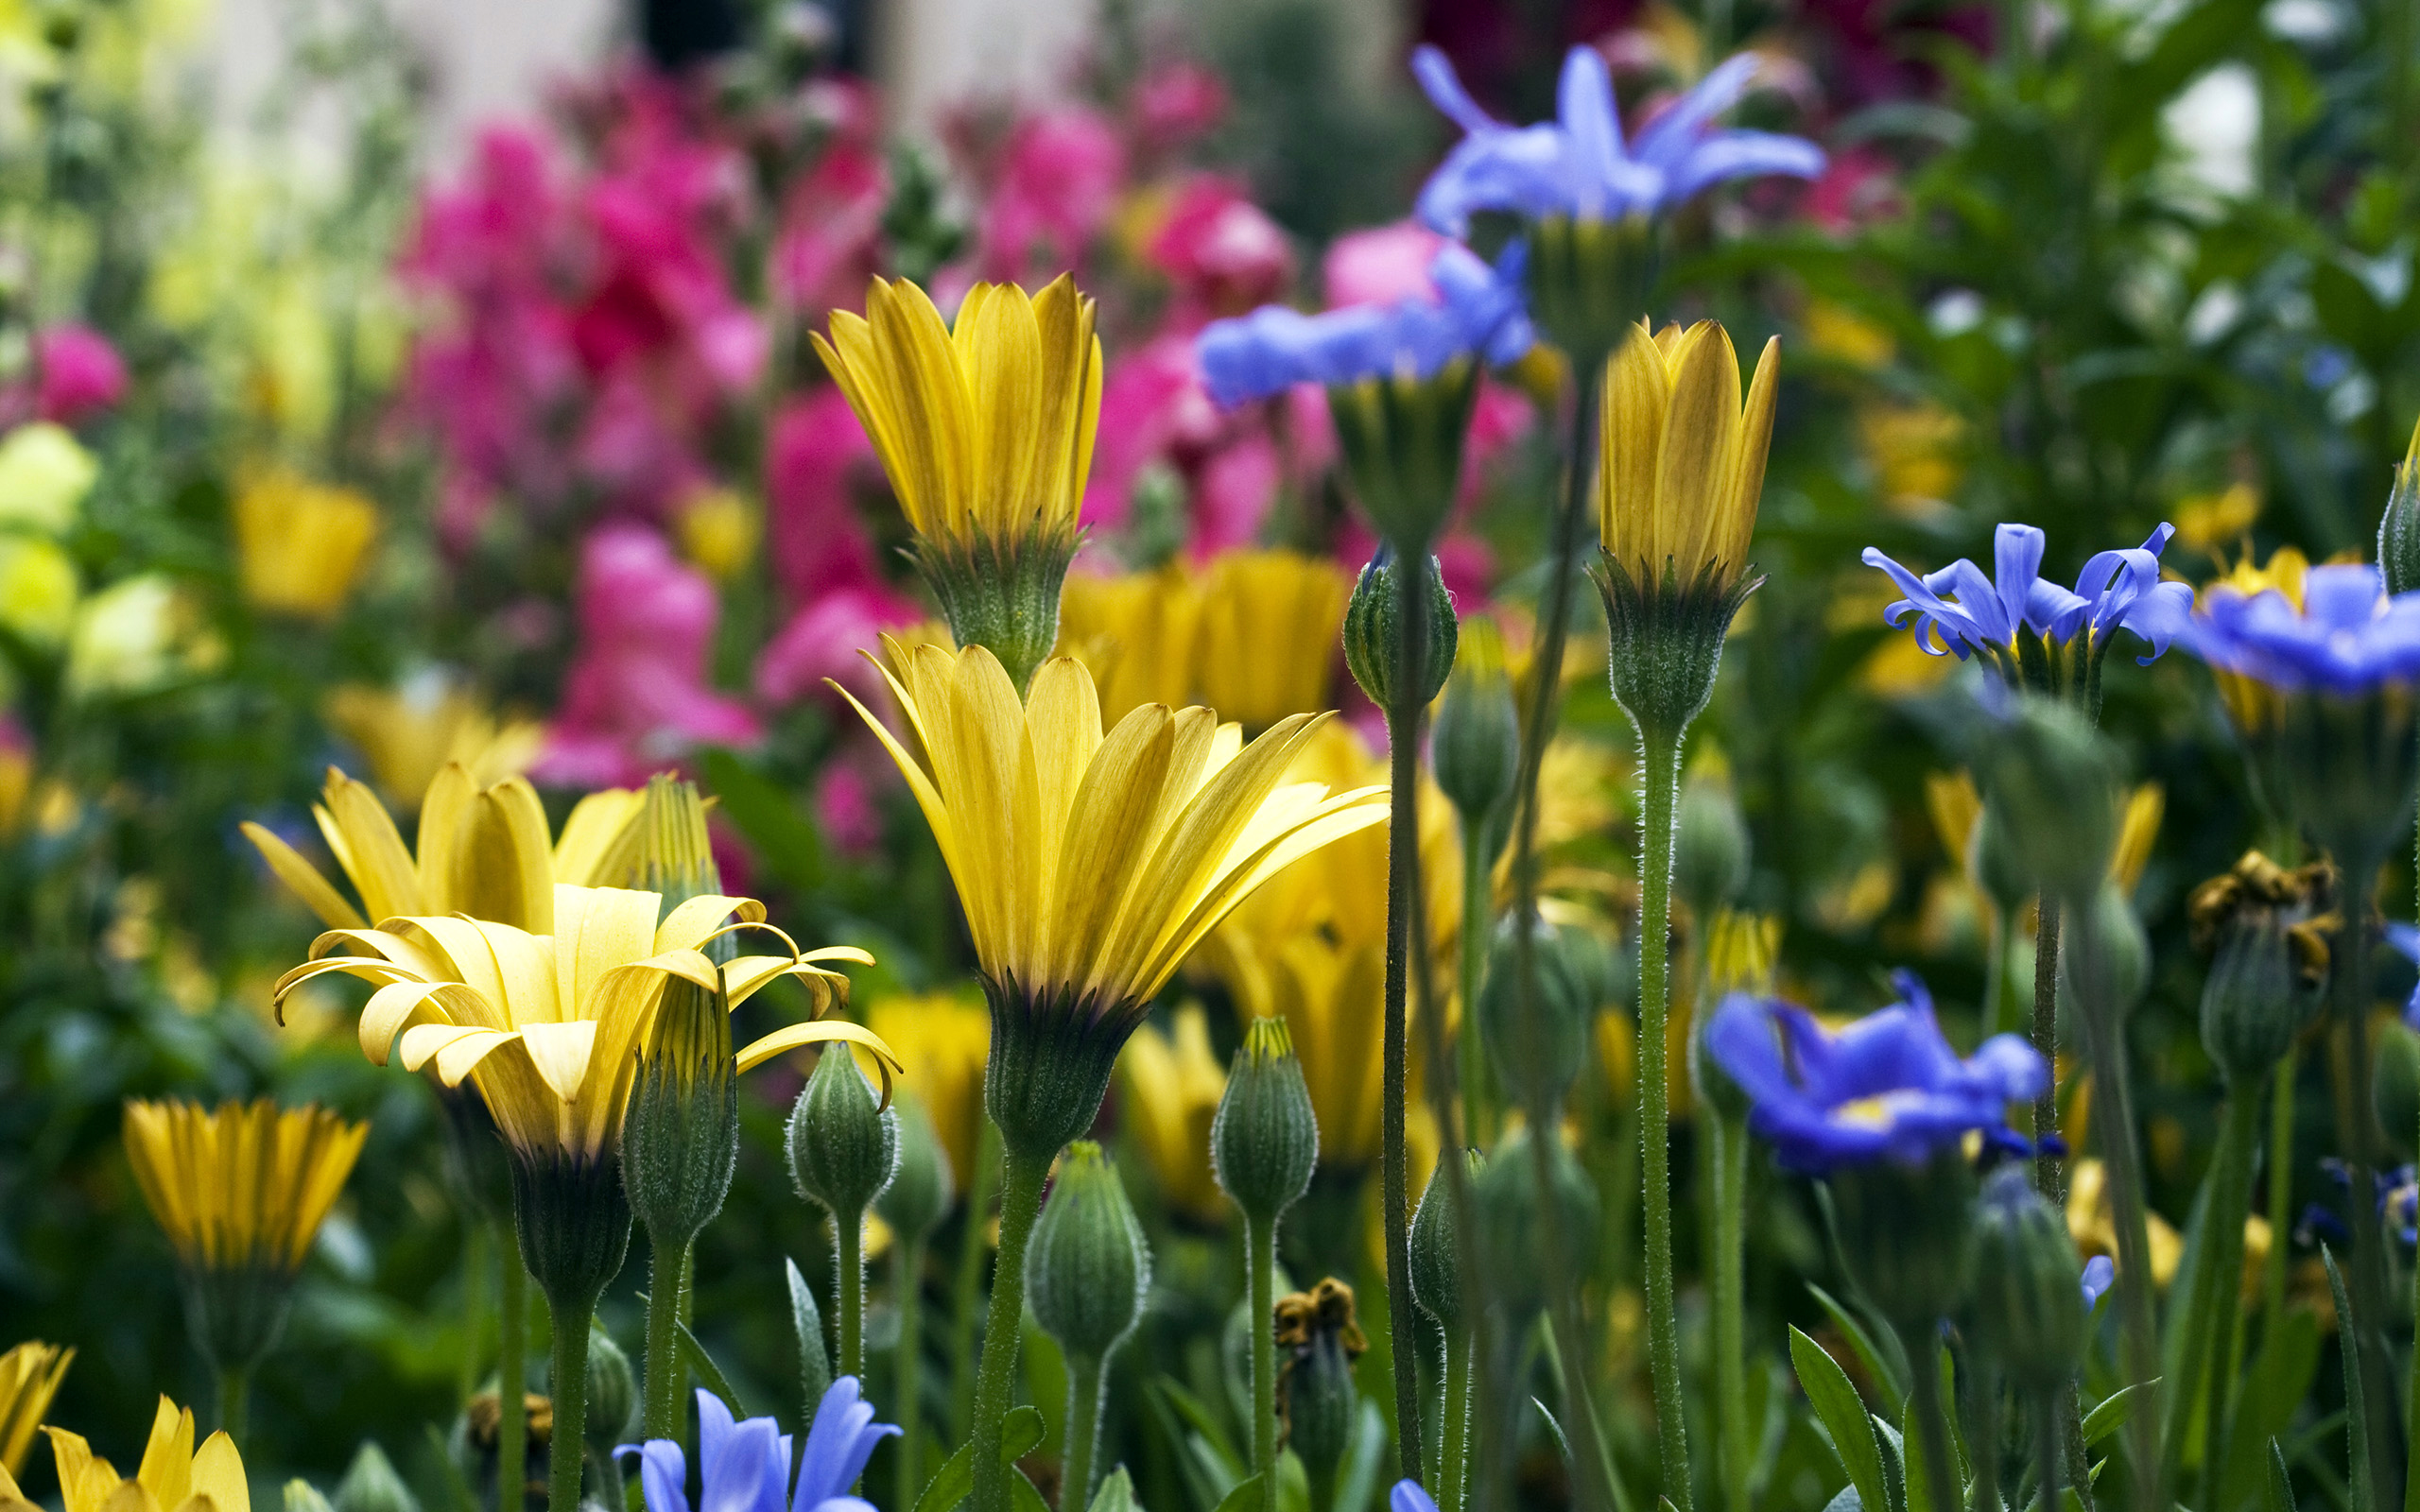 Scenery Wallpaper Includes Several Flowers Sure to Beautify 2560x1600